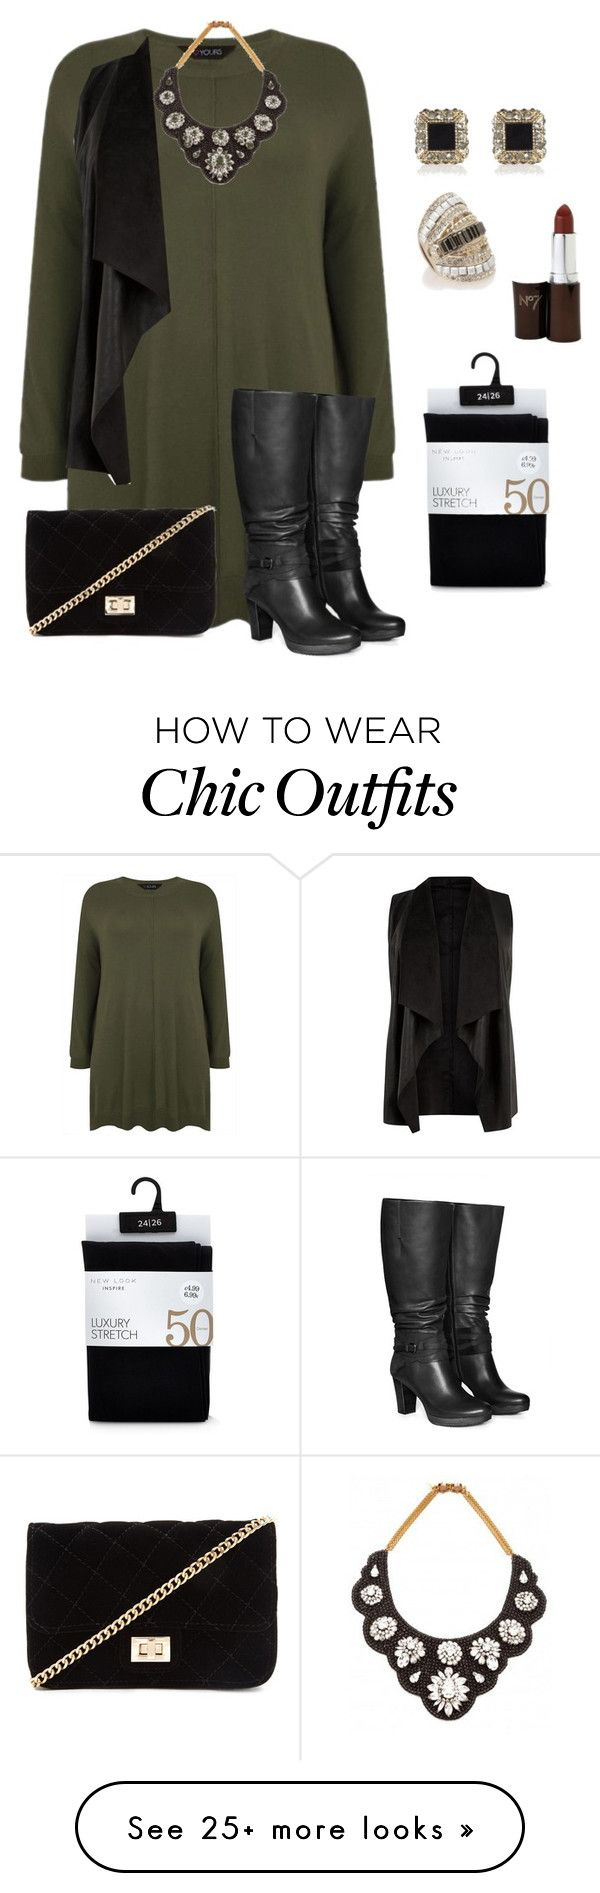 25 plus size winter work outfits you can try 2 - 25-plus-size-winter-work-outfits-you-can-try-2